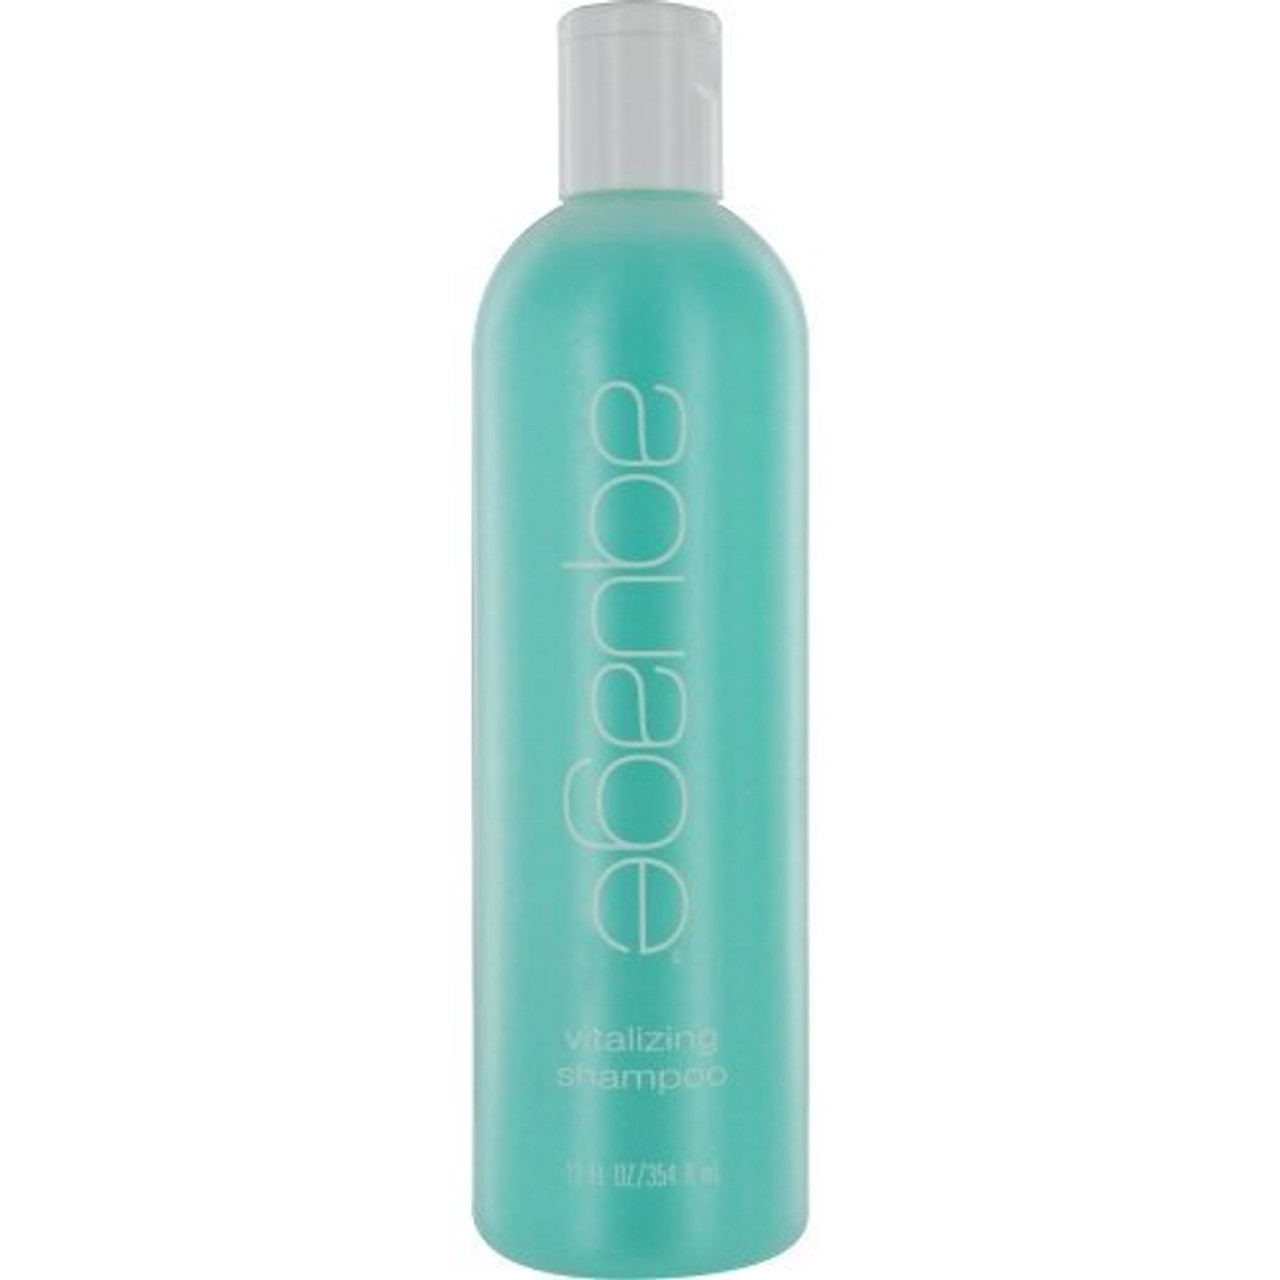 Aquage Vitalizing Shampoo, 12 oz